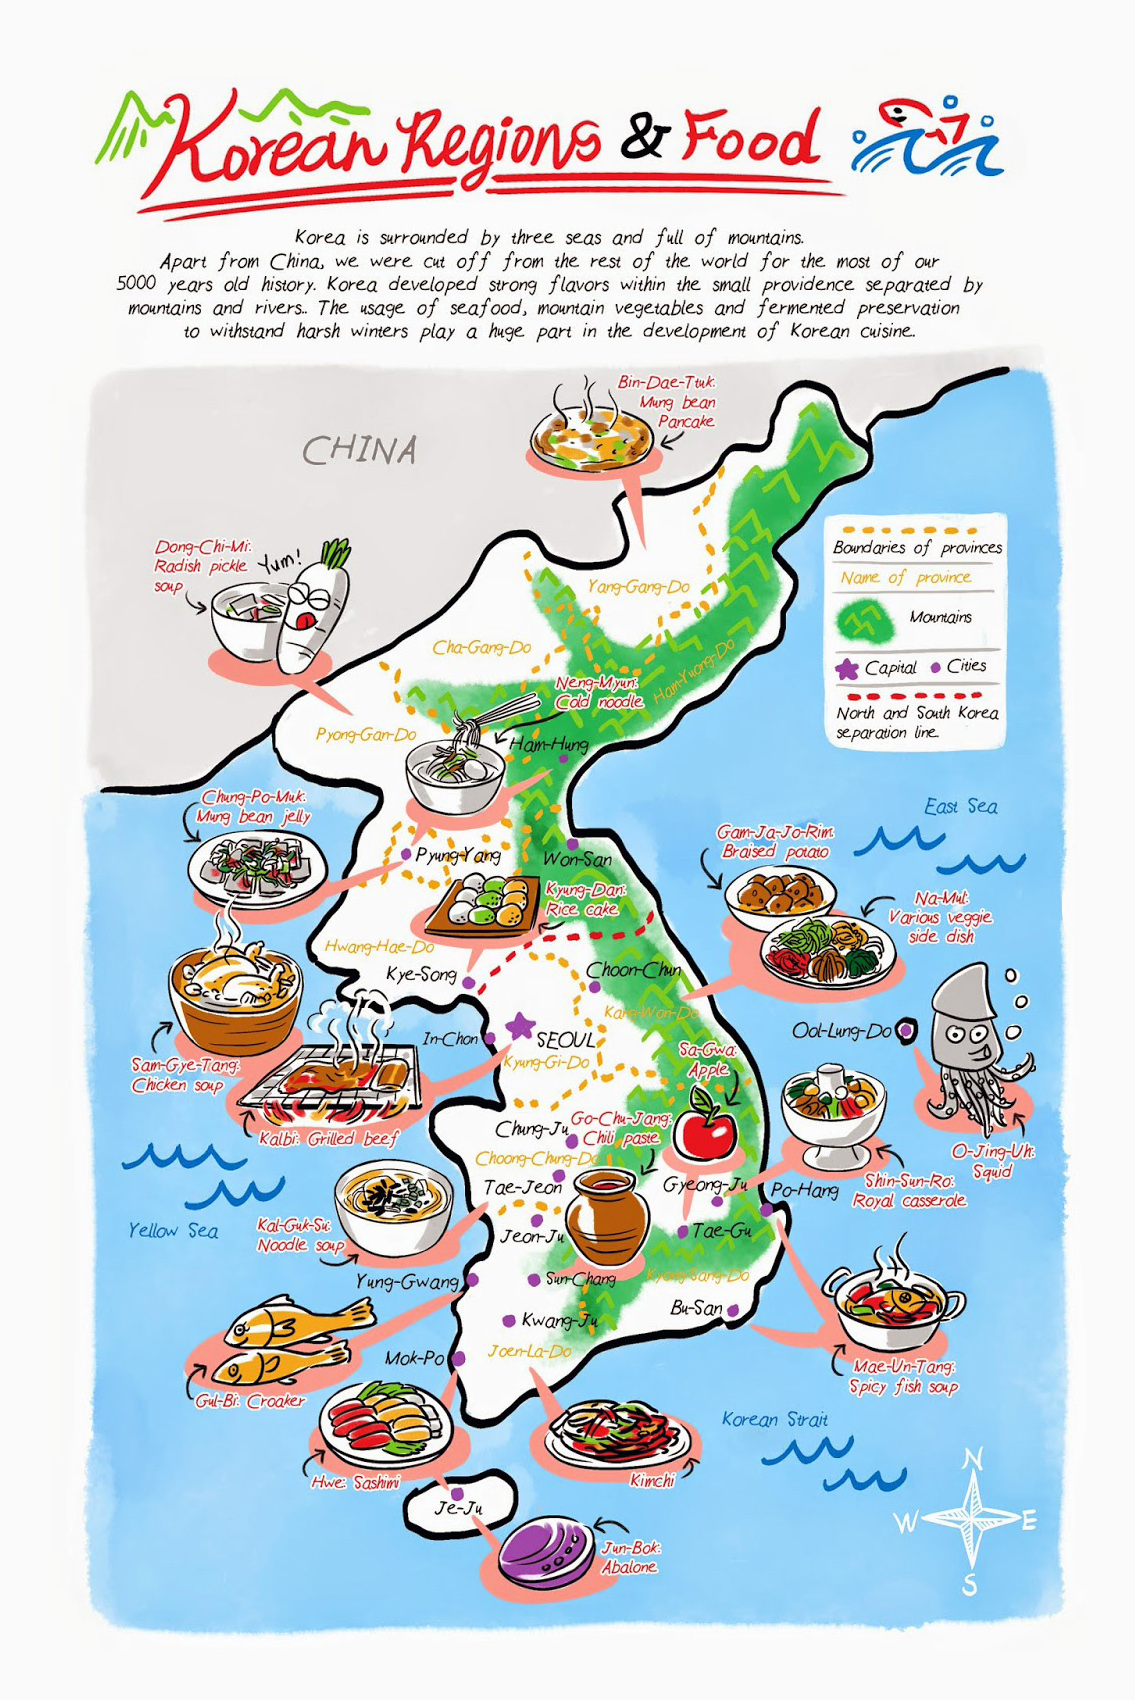 Maps of south korea detailed map of south korea in english detailed korean food regions illustrated map gumiabroncs Image collections